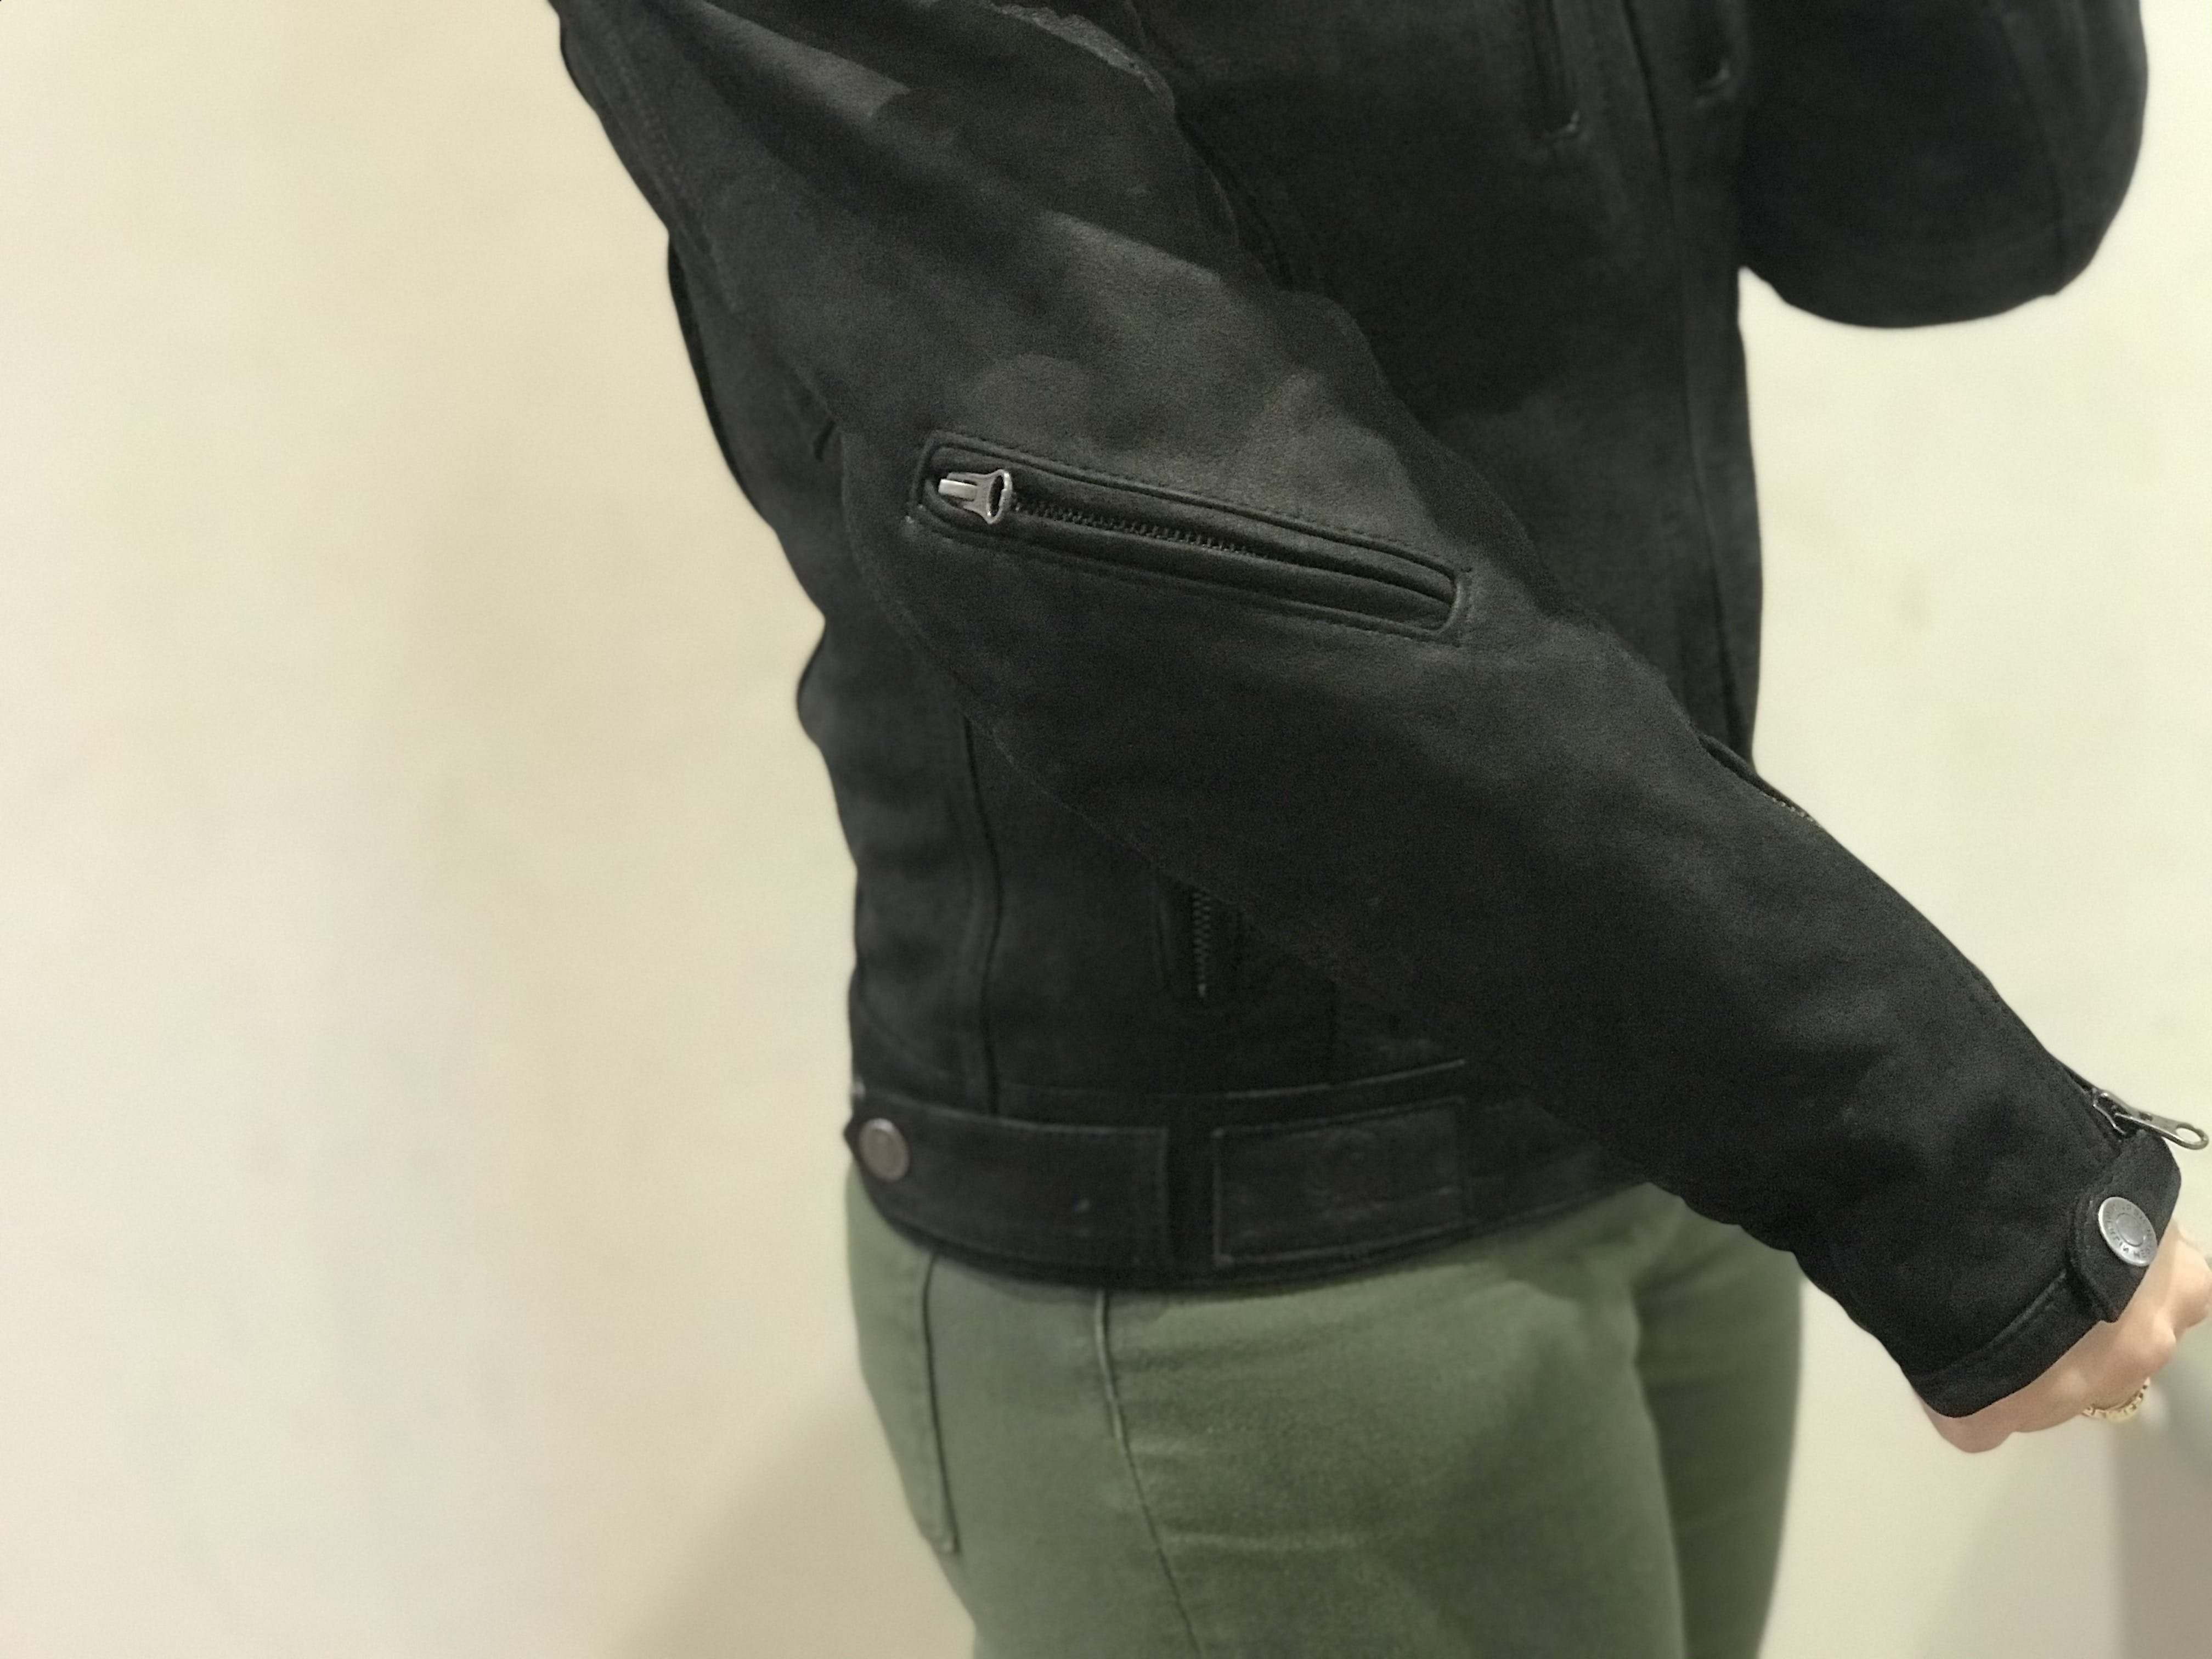 The small arm pocket on the right hand side of the Merlin Mia jacket